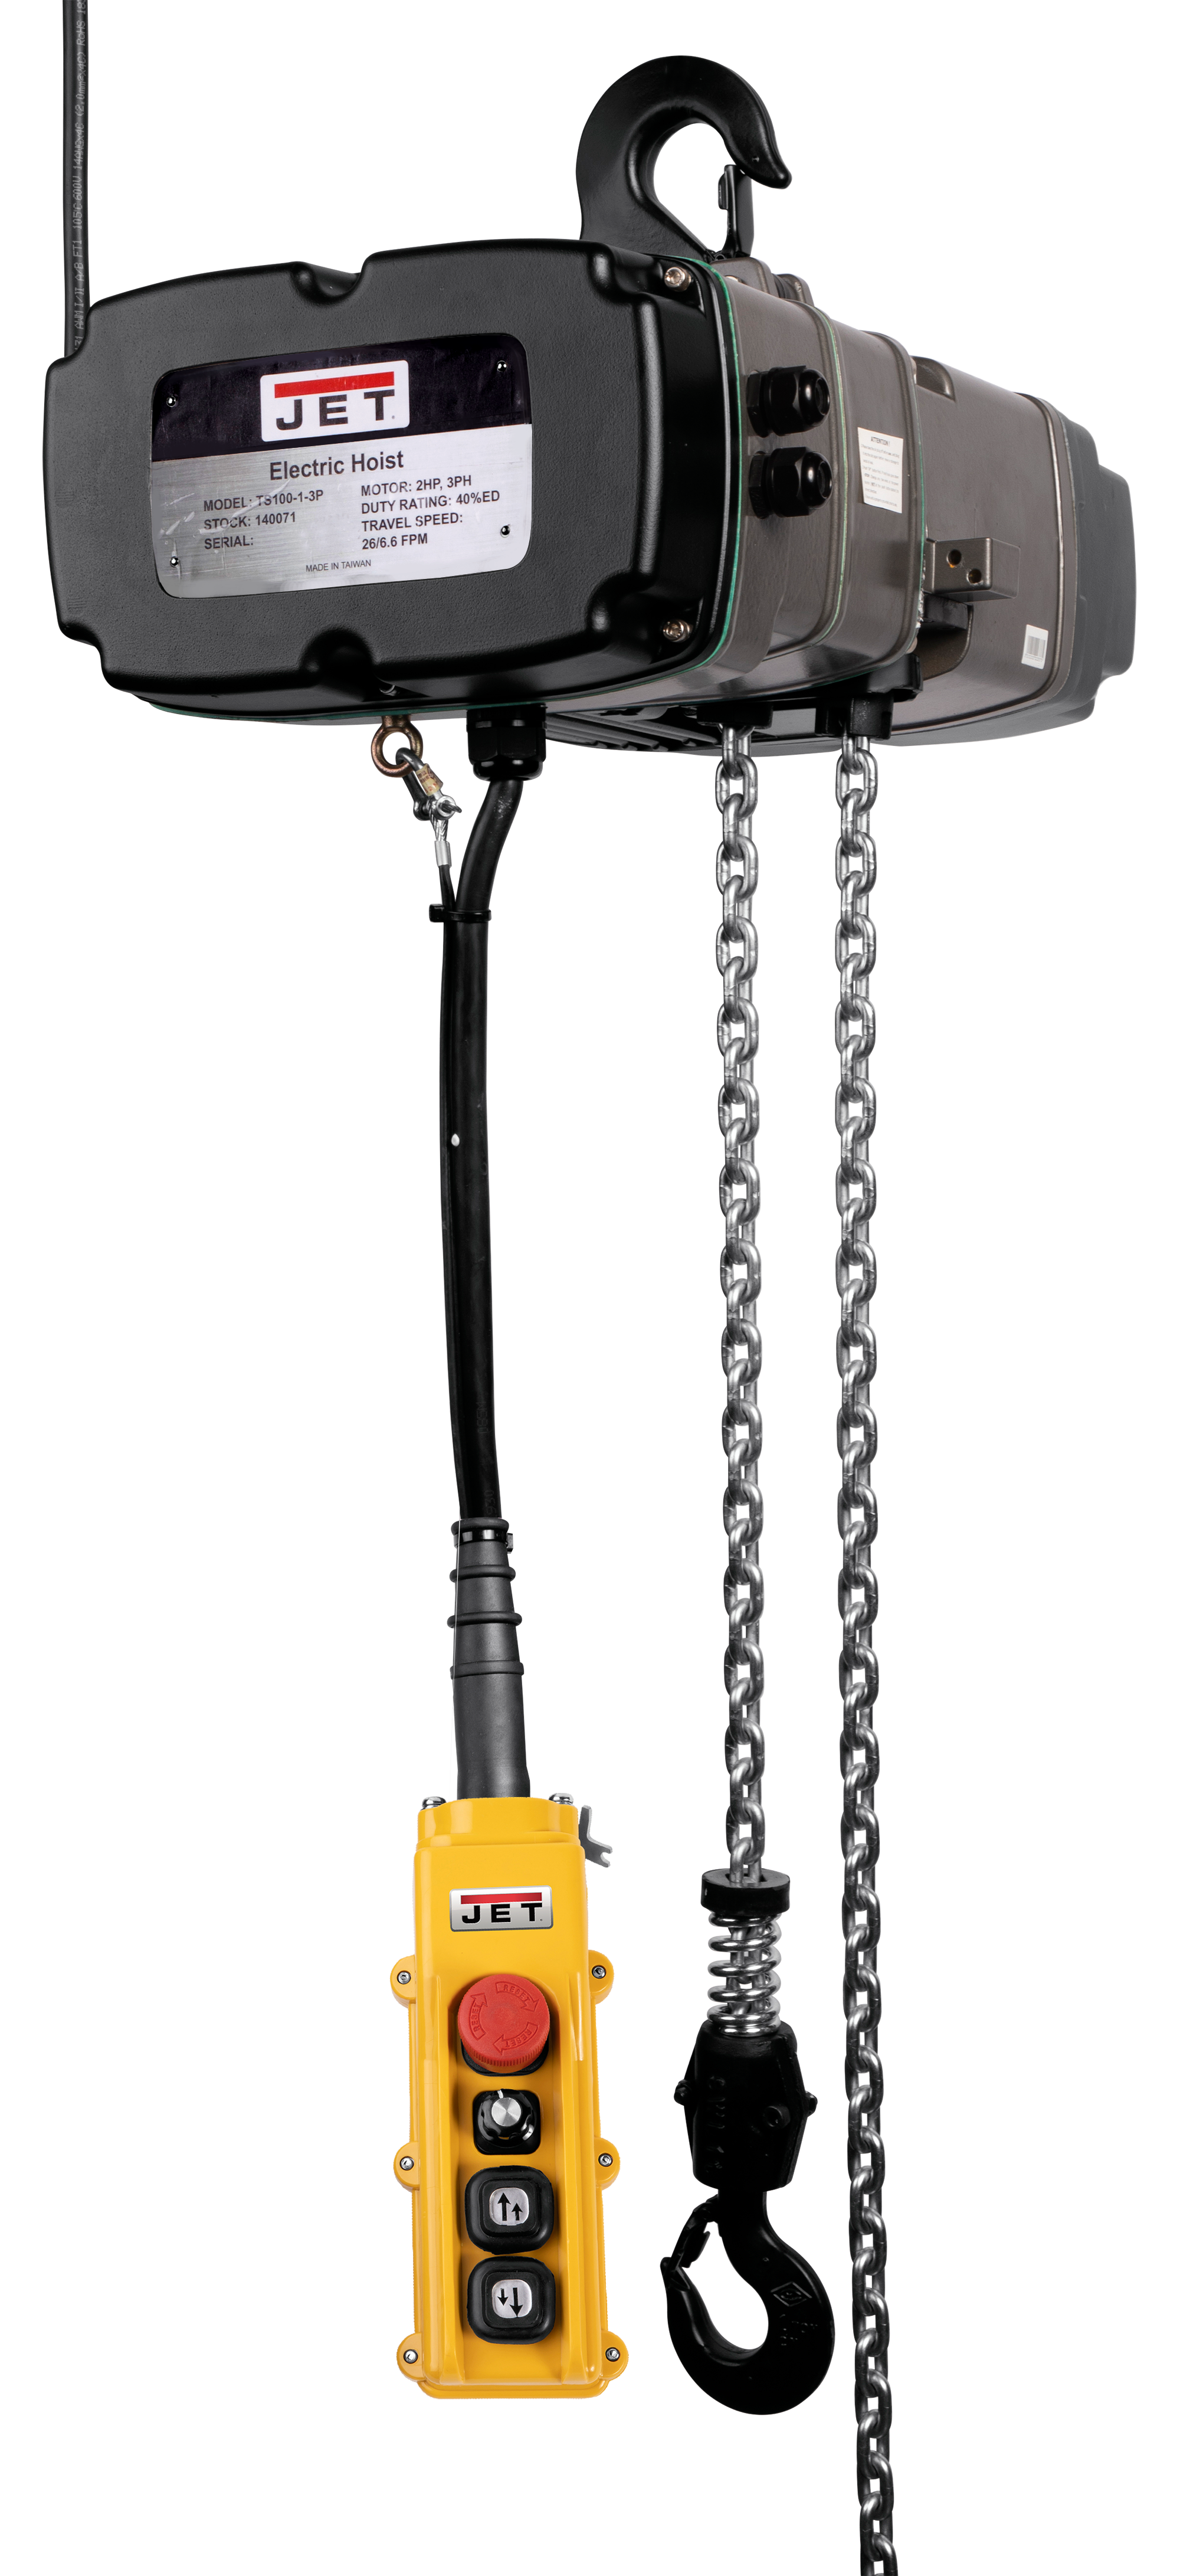 TS300-230-20, 3-Ton Two Speed Electric Chain Hoist  3-Phase 20' Lift